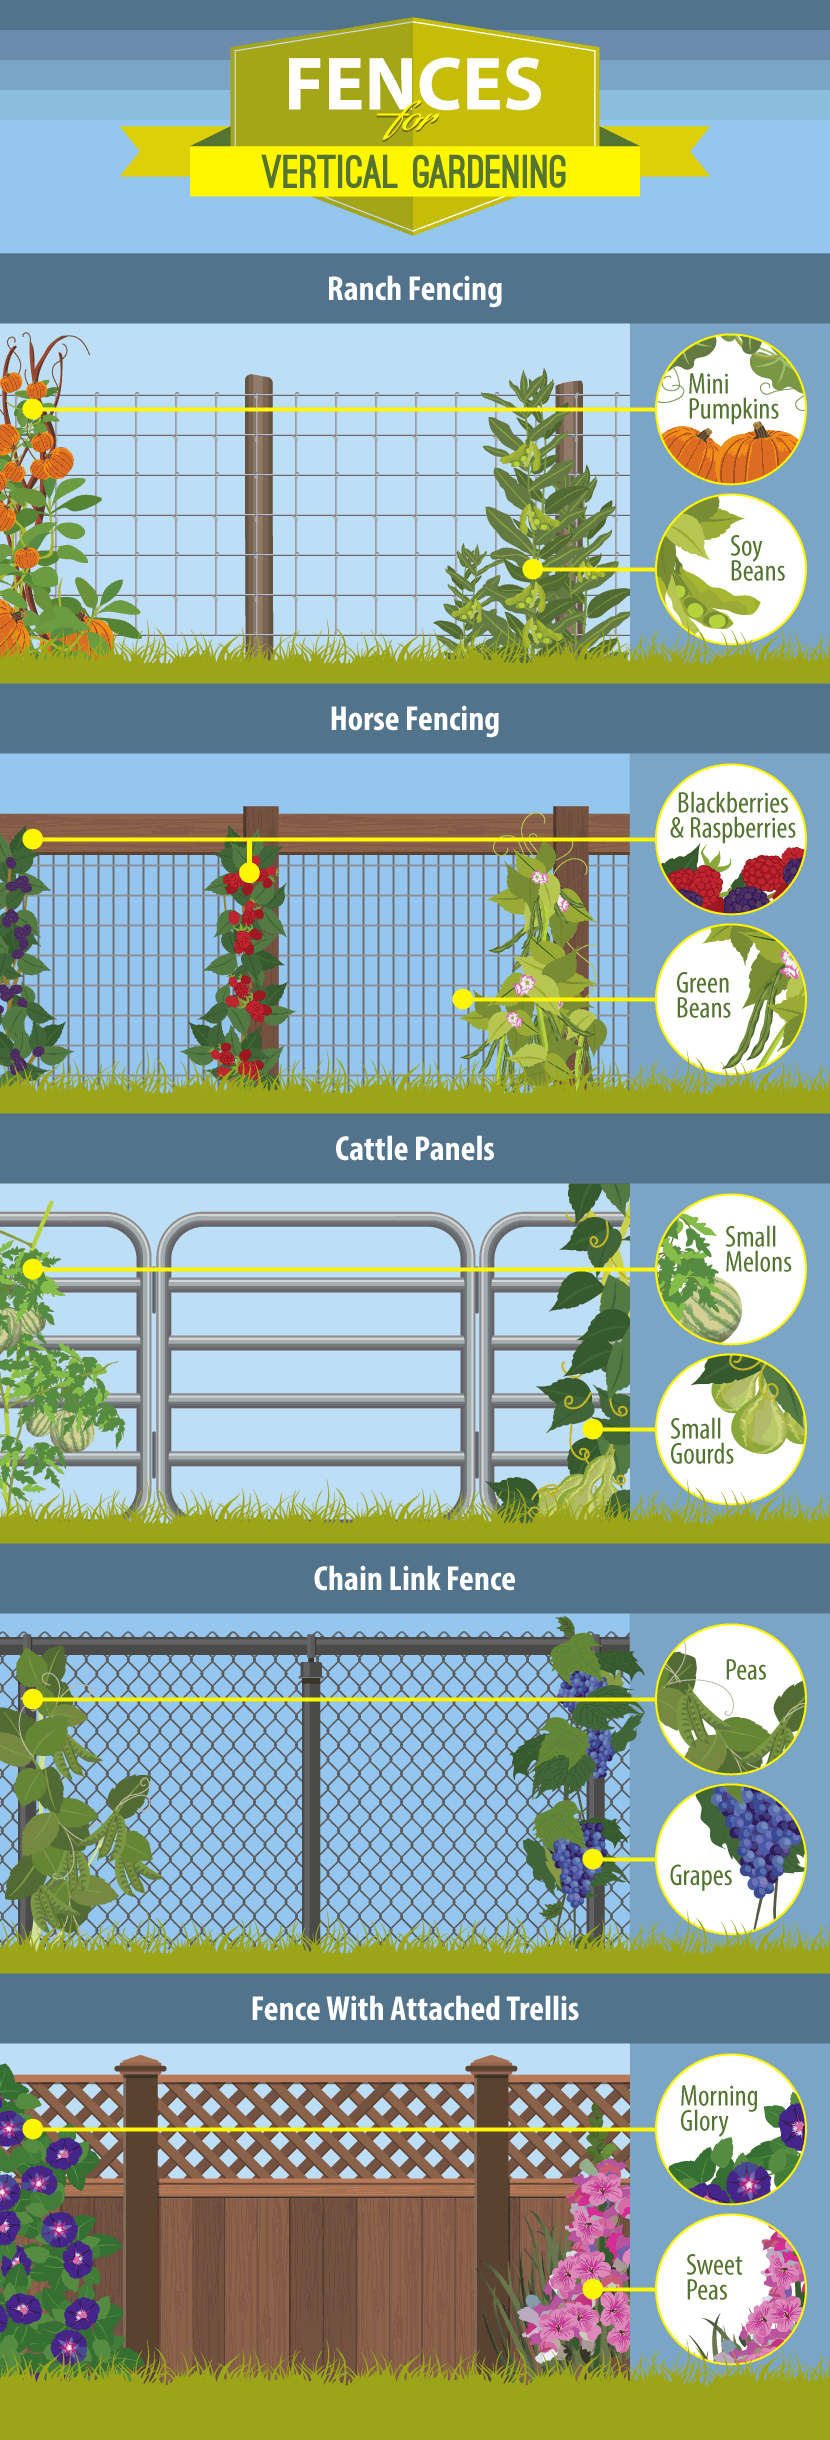 Fence Guide Choosing the Best Fence for Your Garden and PropertyChoosing the Best Fence for Your Garden and Property is part of Vertical garden Fence - Fencing should be a big part of your garden design plan  Fences are an important aspect; they keep your plants safe and add character to your yard  Follow this guide and get to planning your fence today!